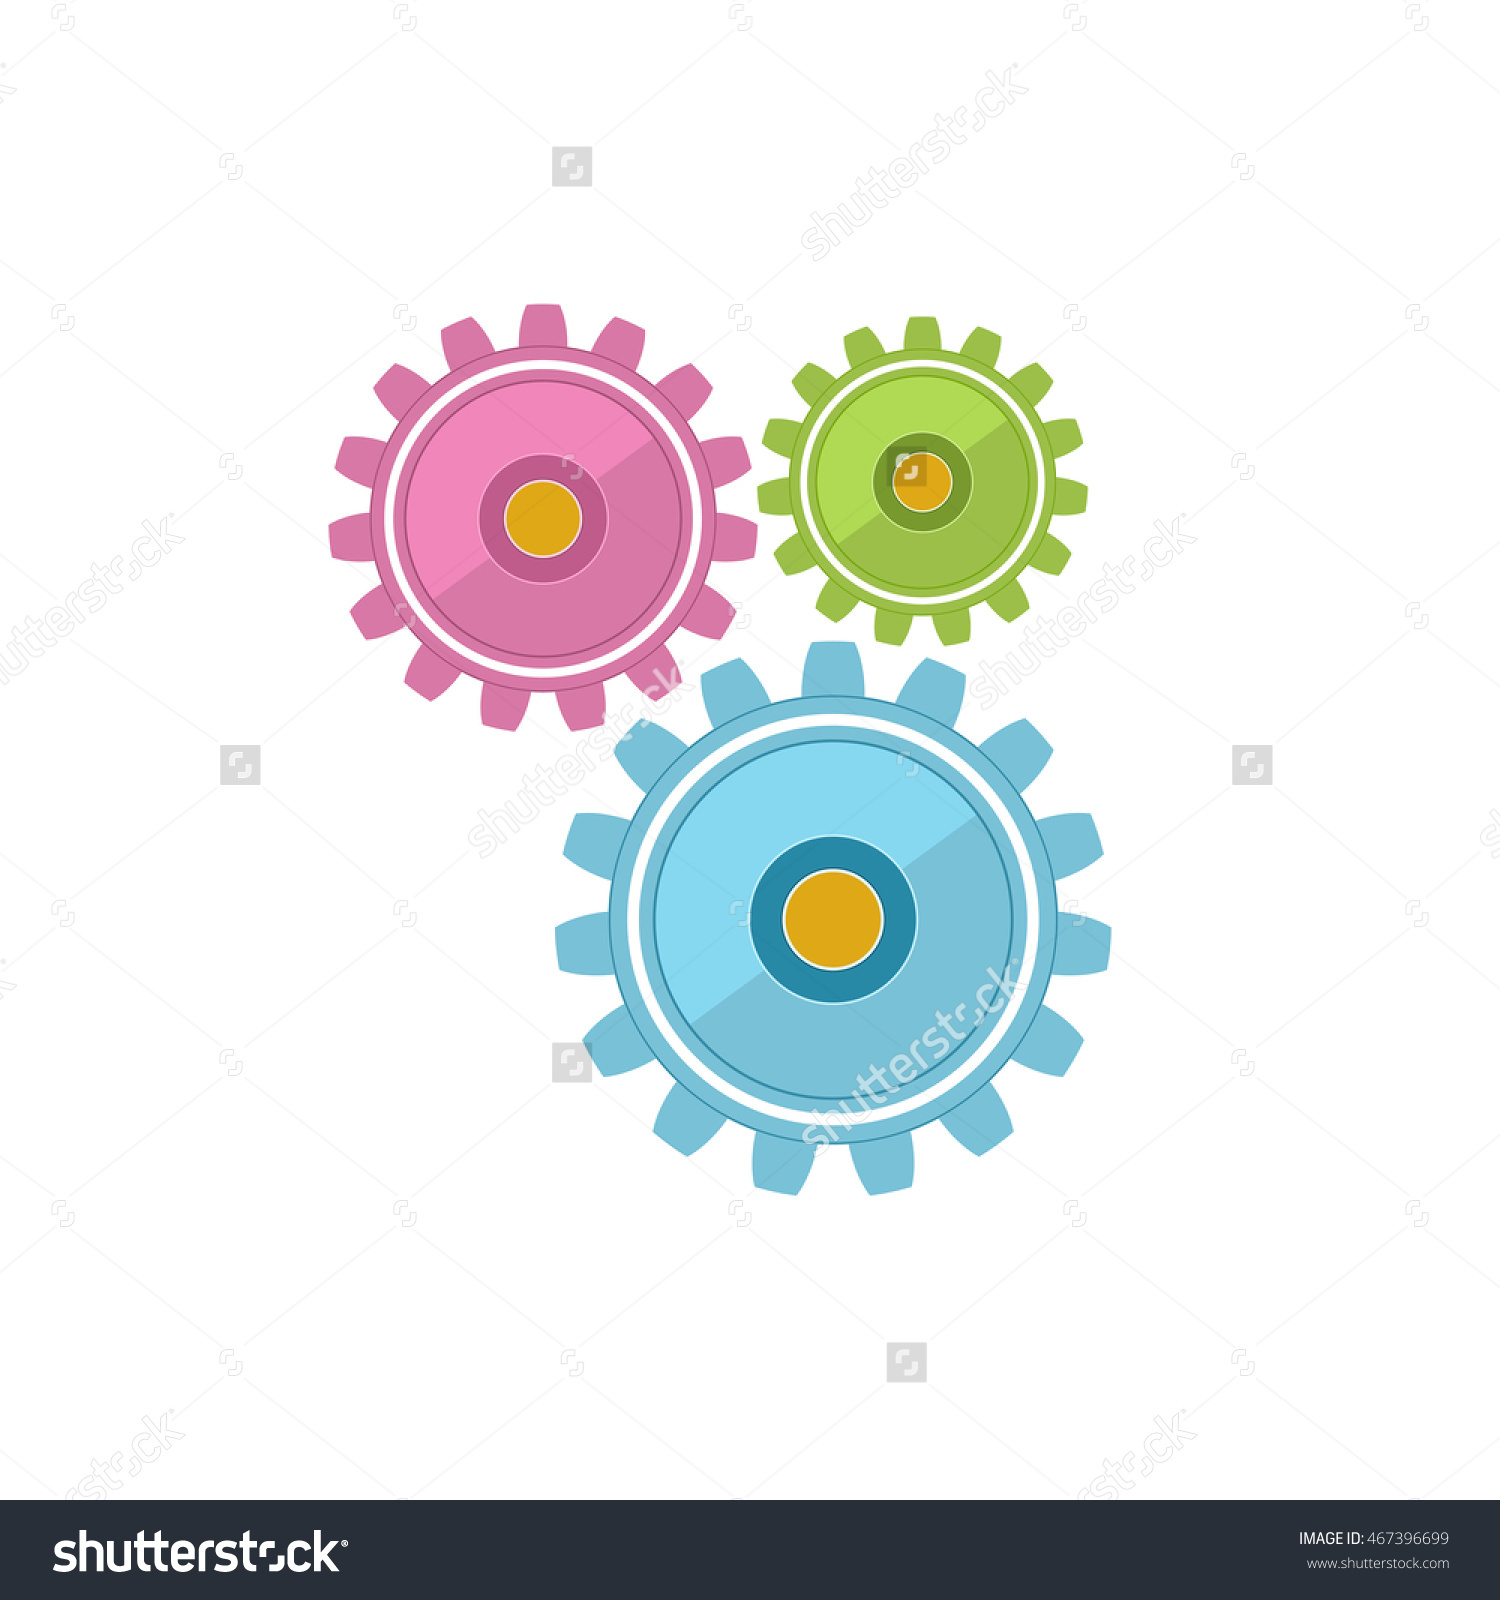 Gears Isolated On White Background, Teamwork, Joint Effort, Team.